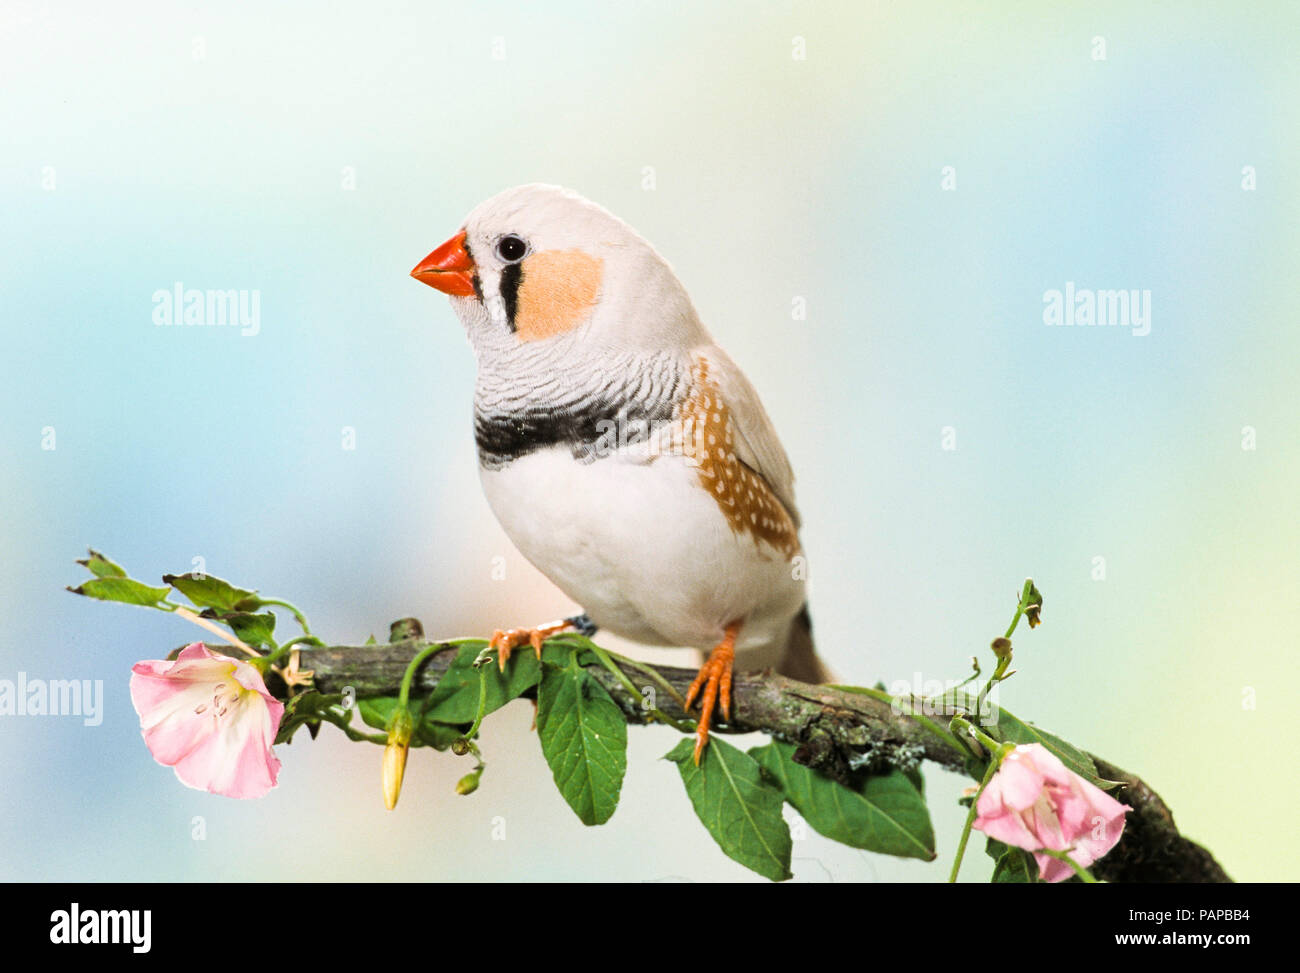 Zebra Finch (Taeniopygia guttata). Adult bird perched on a twig with flowering Hedge Bindweed. Germany - Stock Image